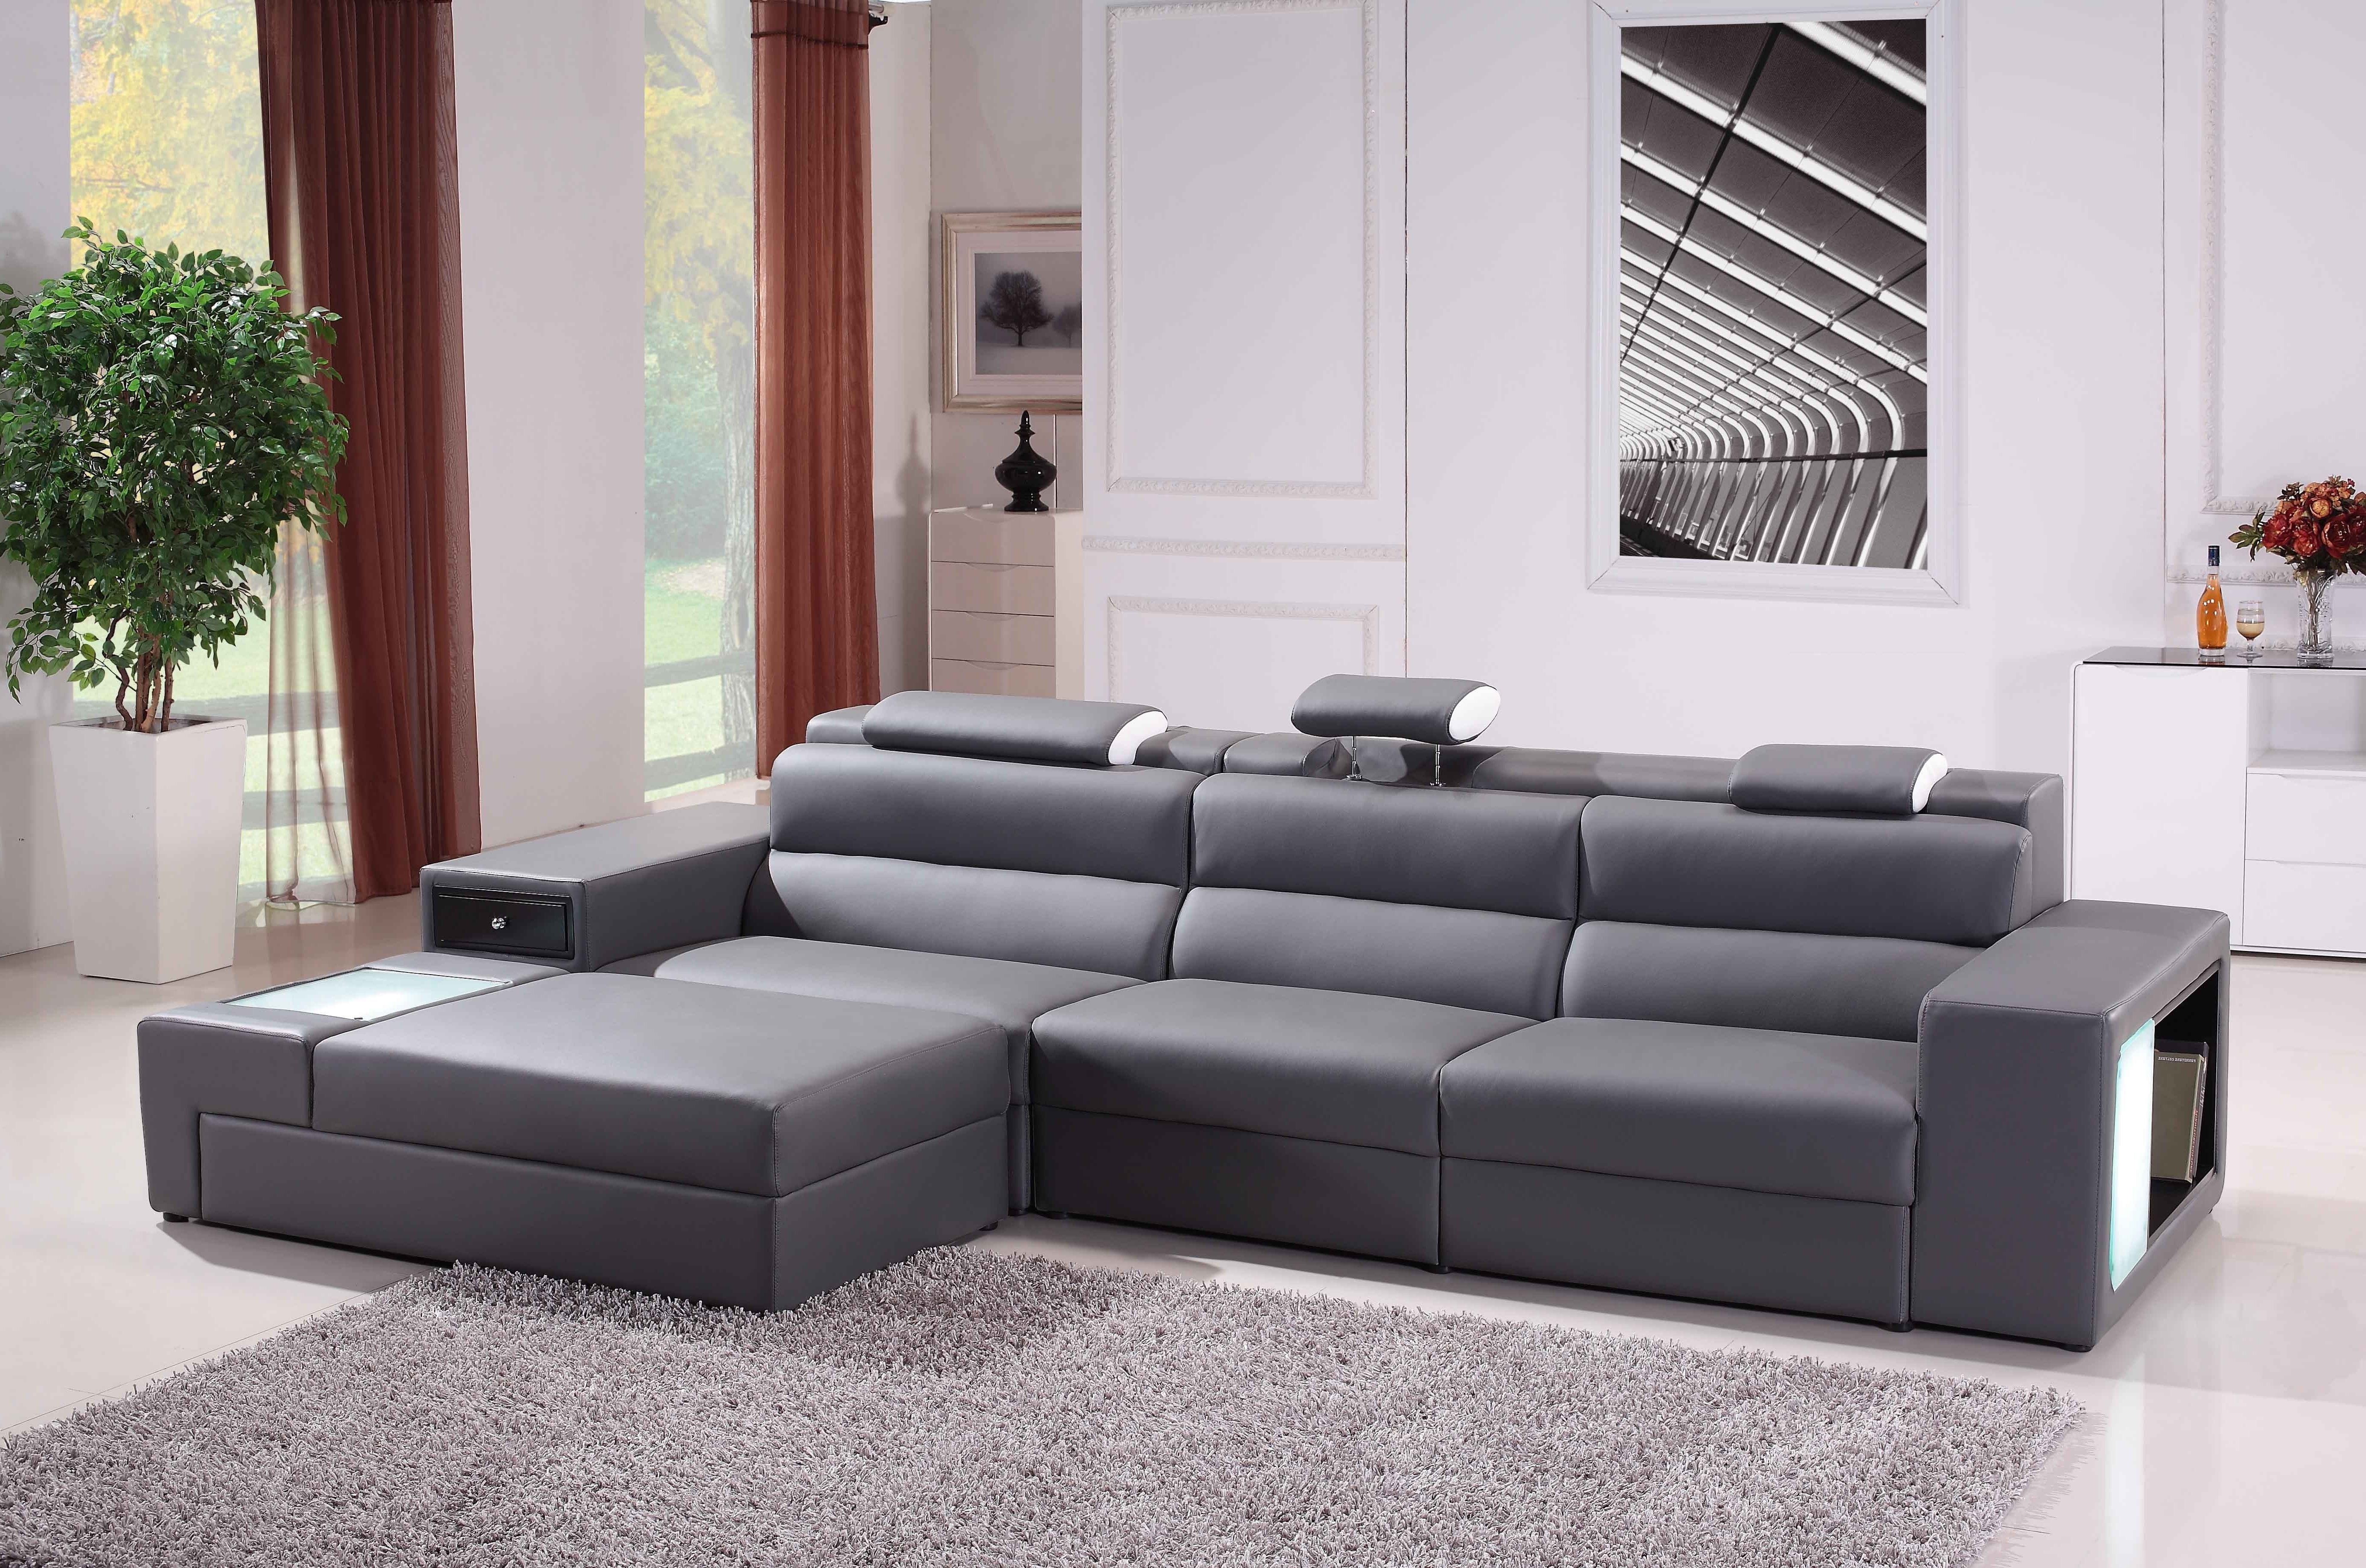 Best And Newest Contemporary Sectional Sofas Within Furniture: Cool Grey Sectional Couch Design With Rugs And Beige (View 11 of 20)